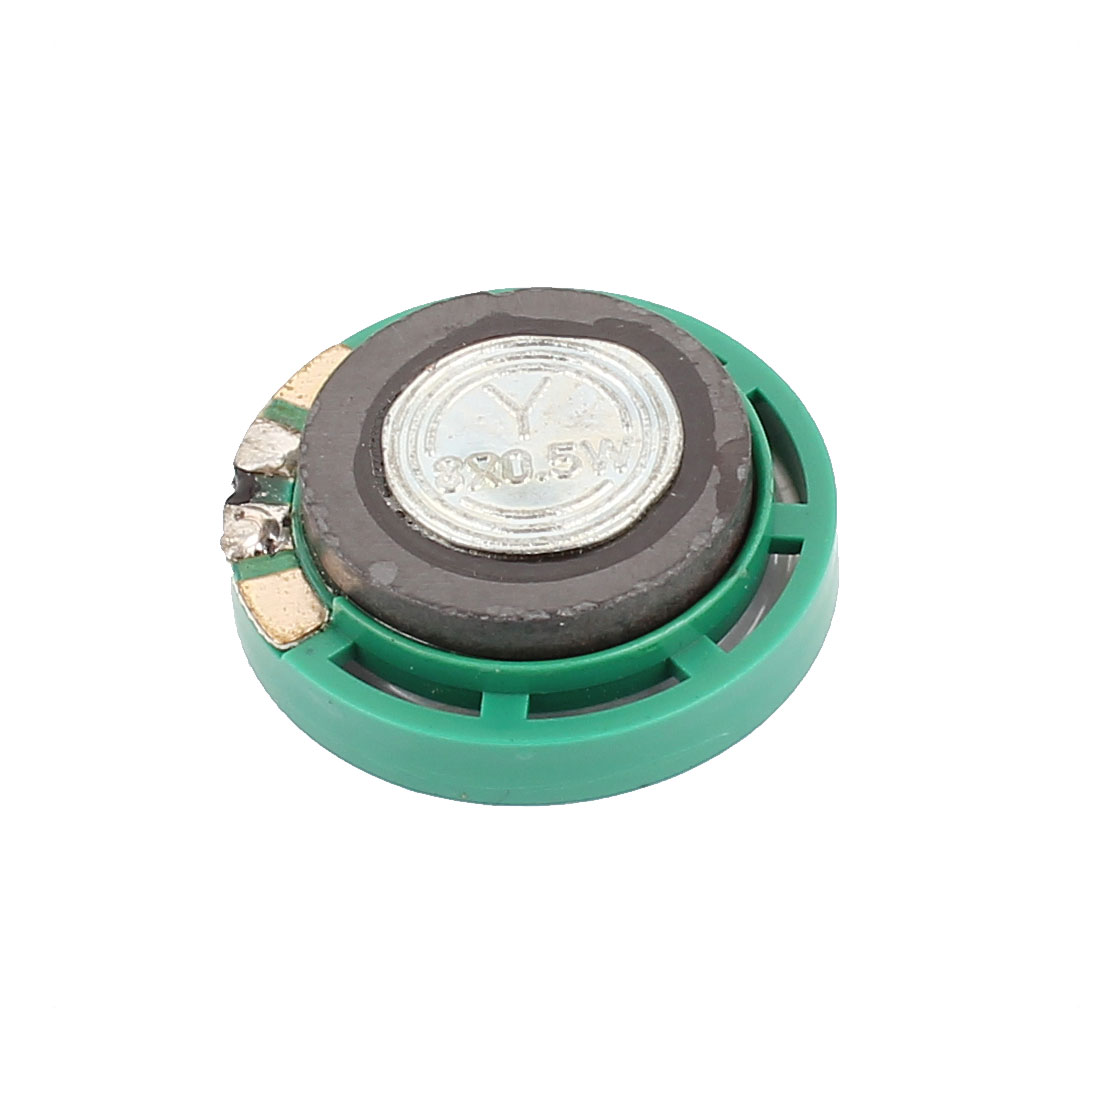 Plastic Housing 29mm 8 Ohm 0.5W External Magnet Speaker Horn Loudspeaker Green